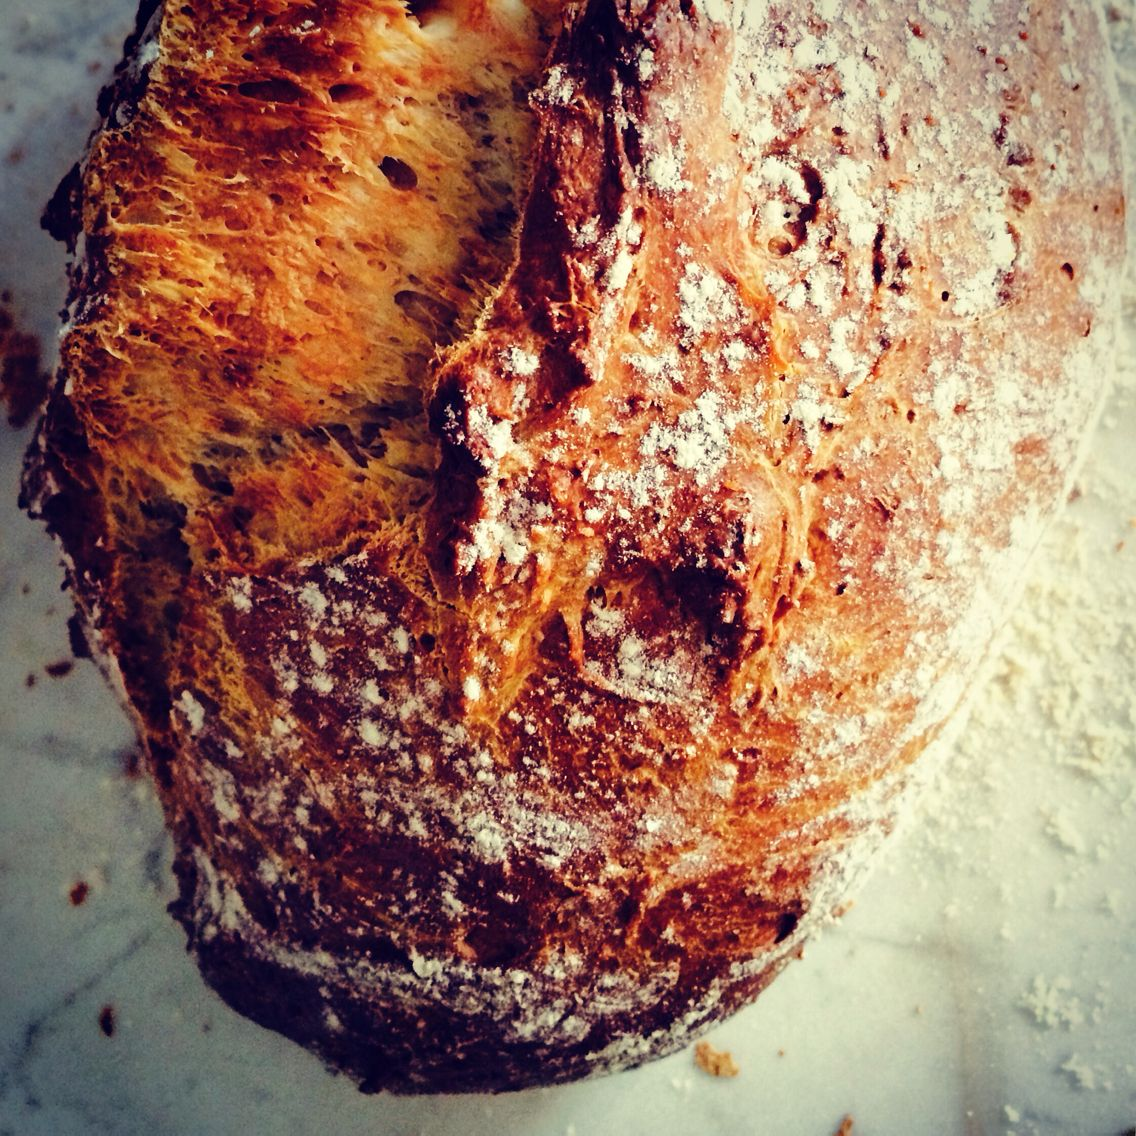 Today's stone baked sourdough loaf #mykitchen